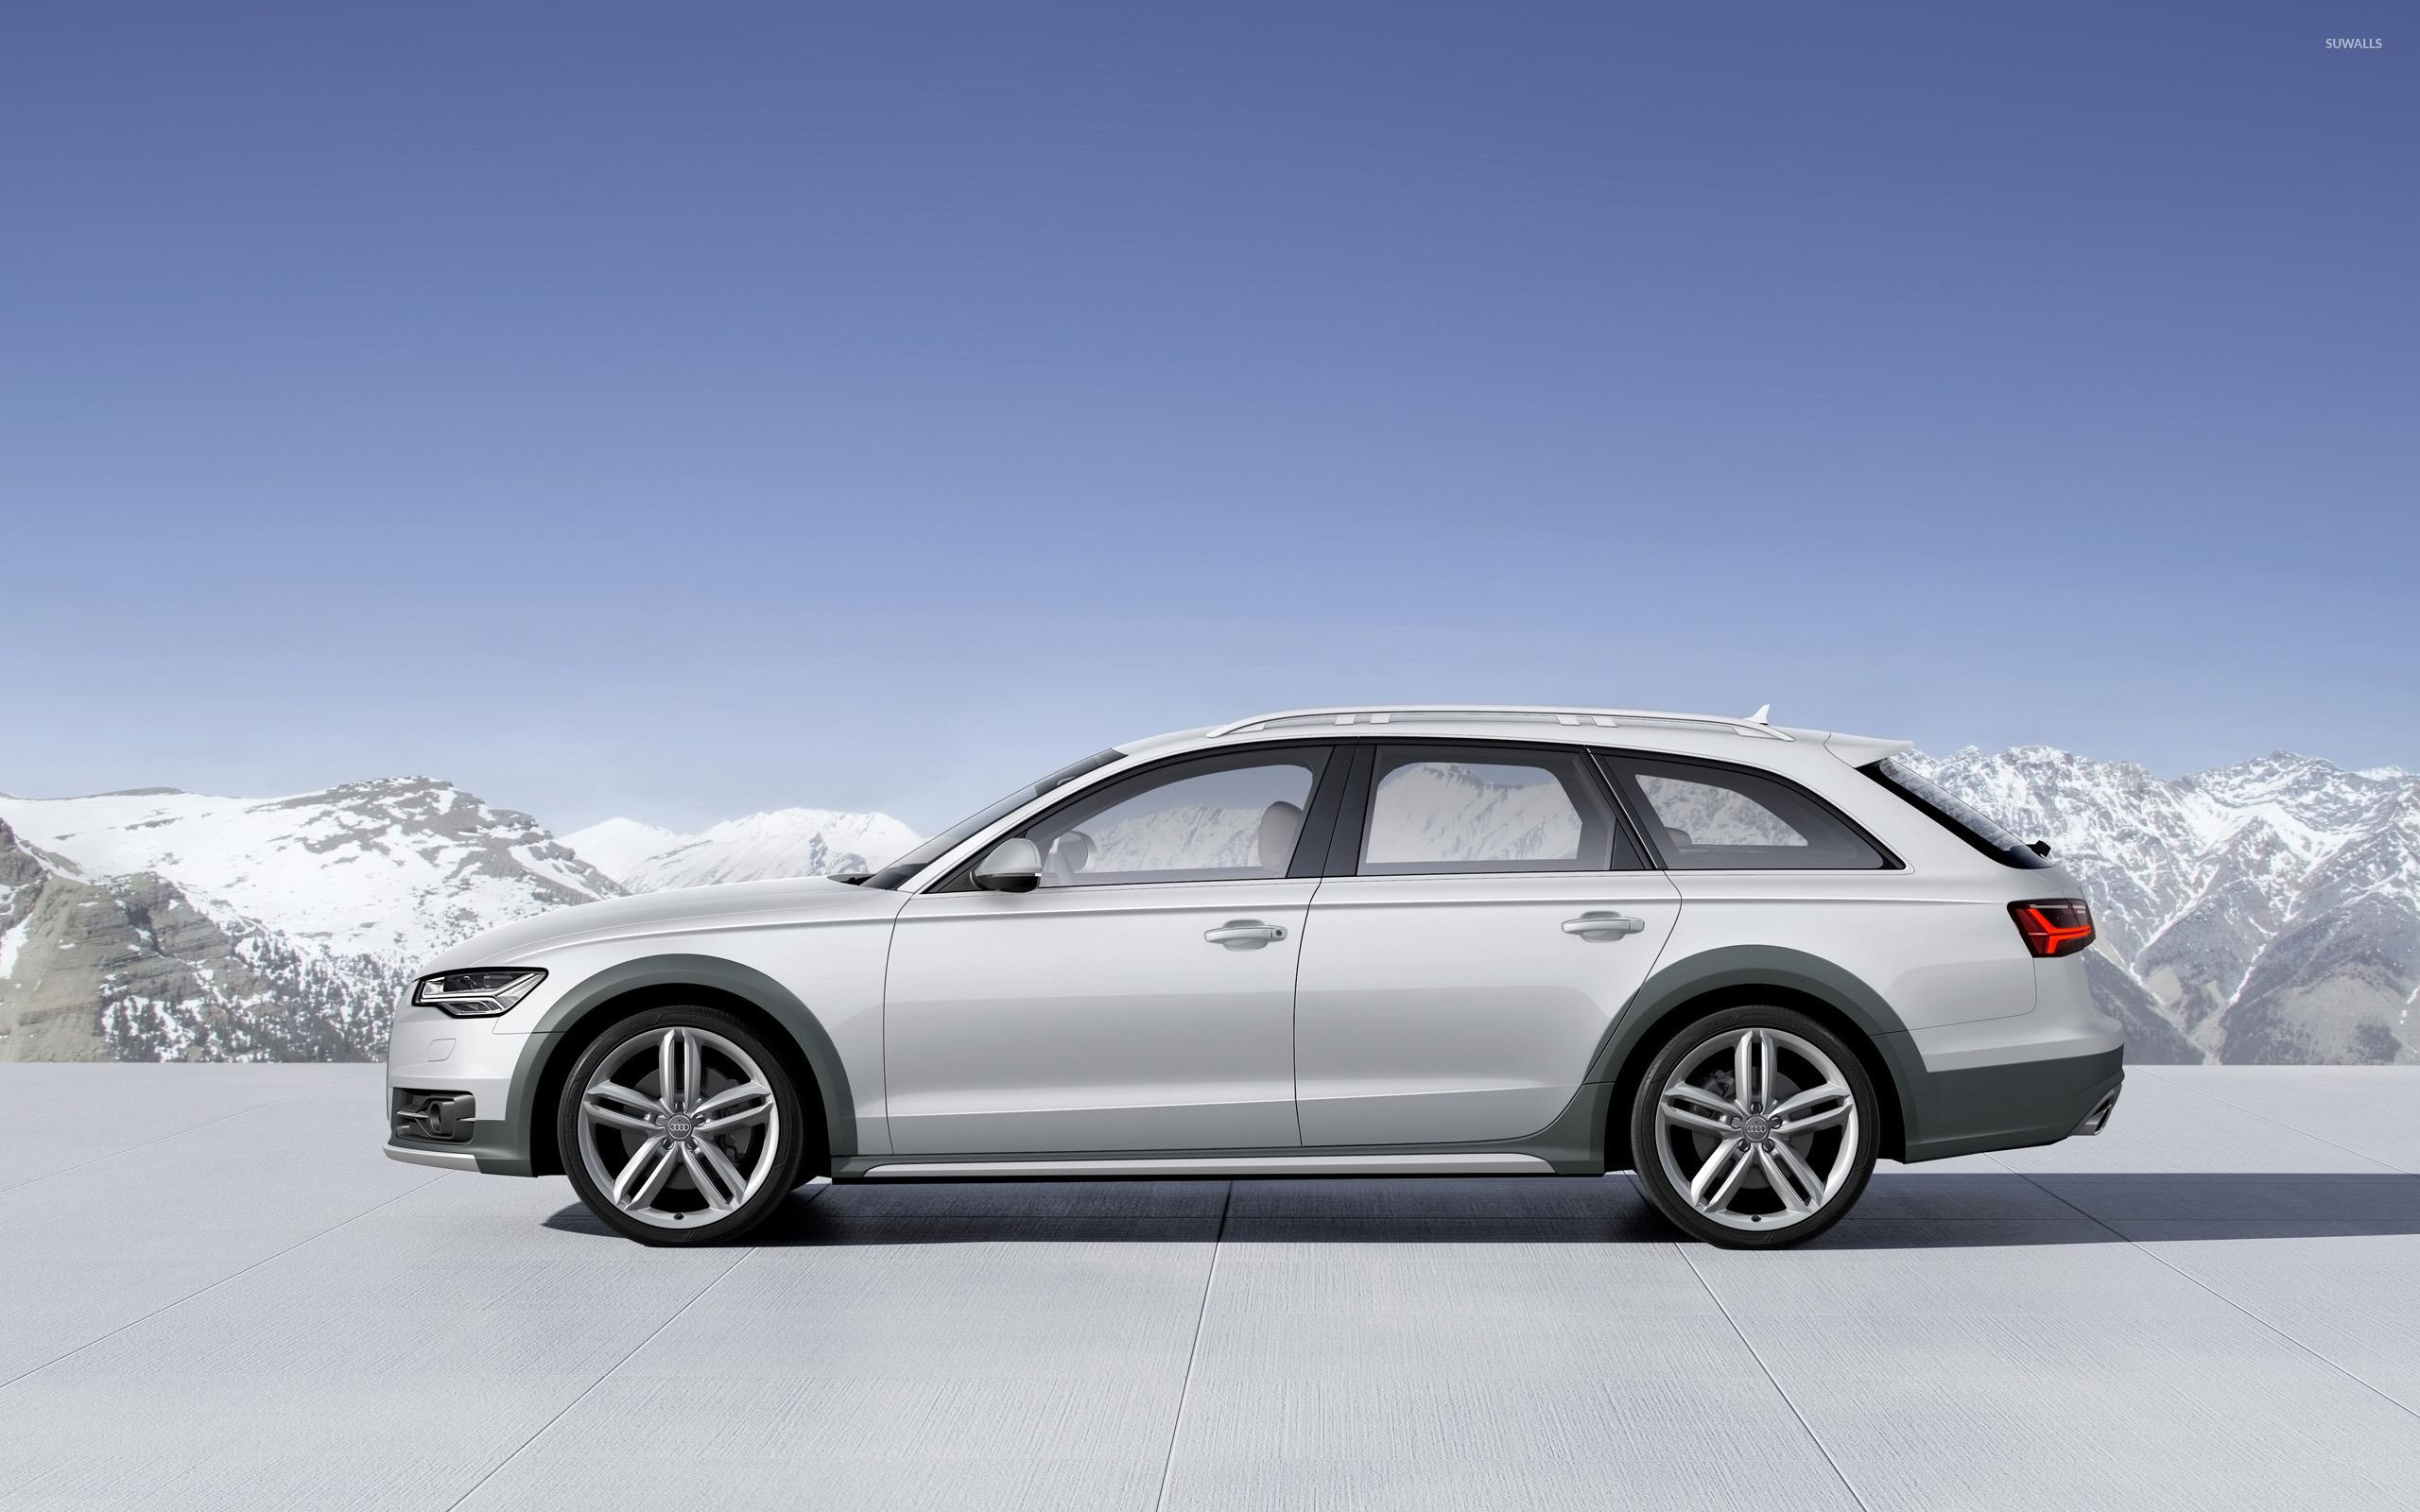 2015 Audi A6 allroad quattro [2] wallpaper - Car wallpapers - #40833